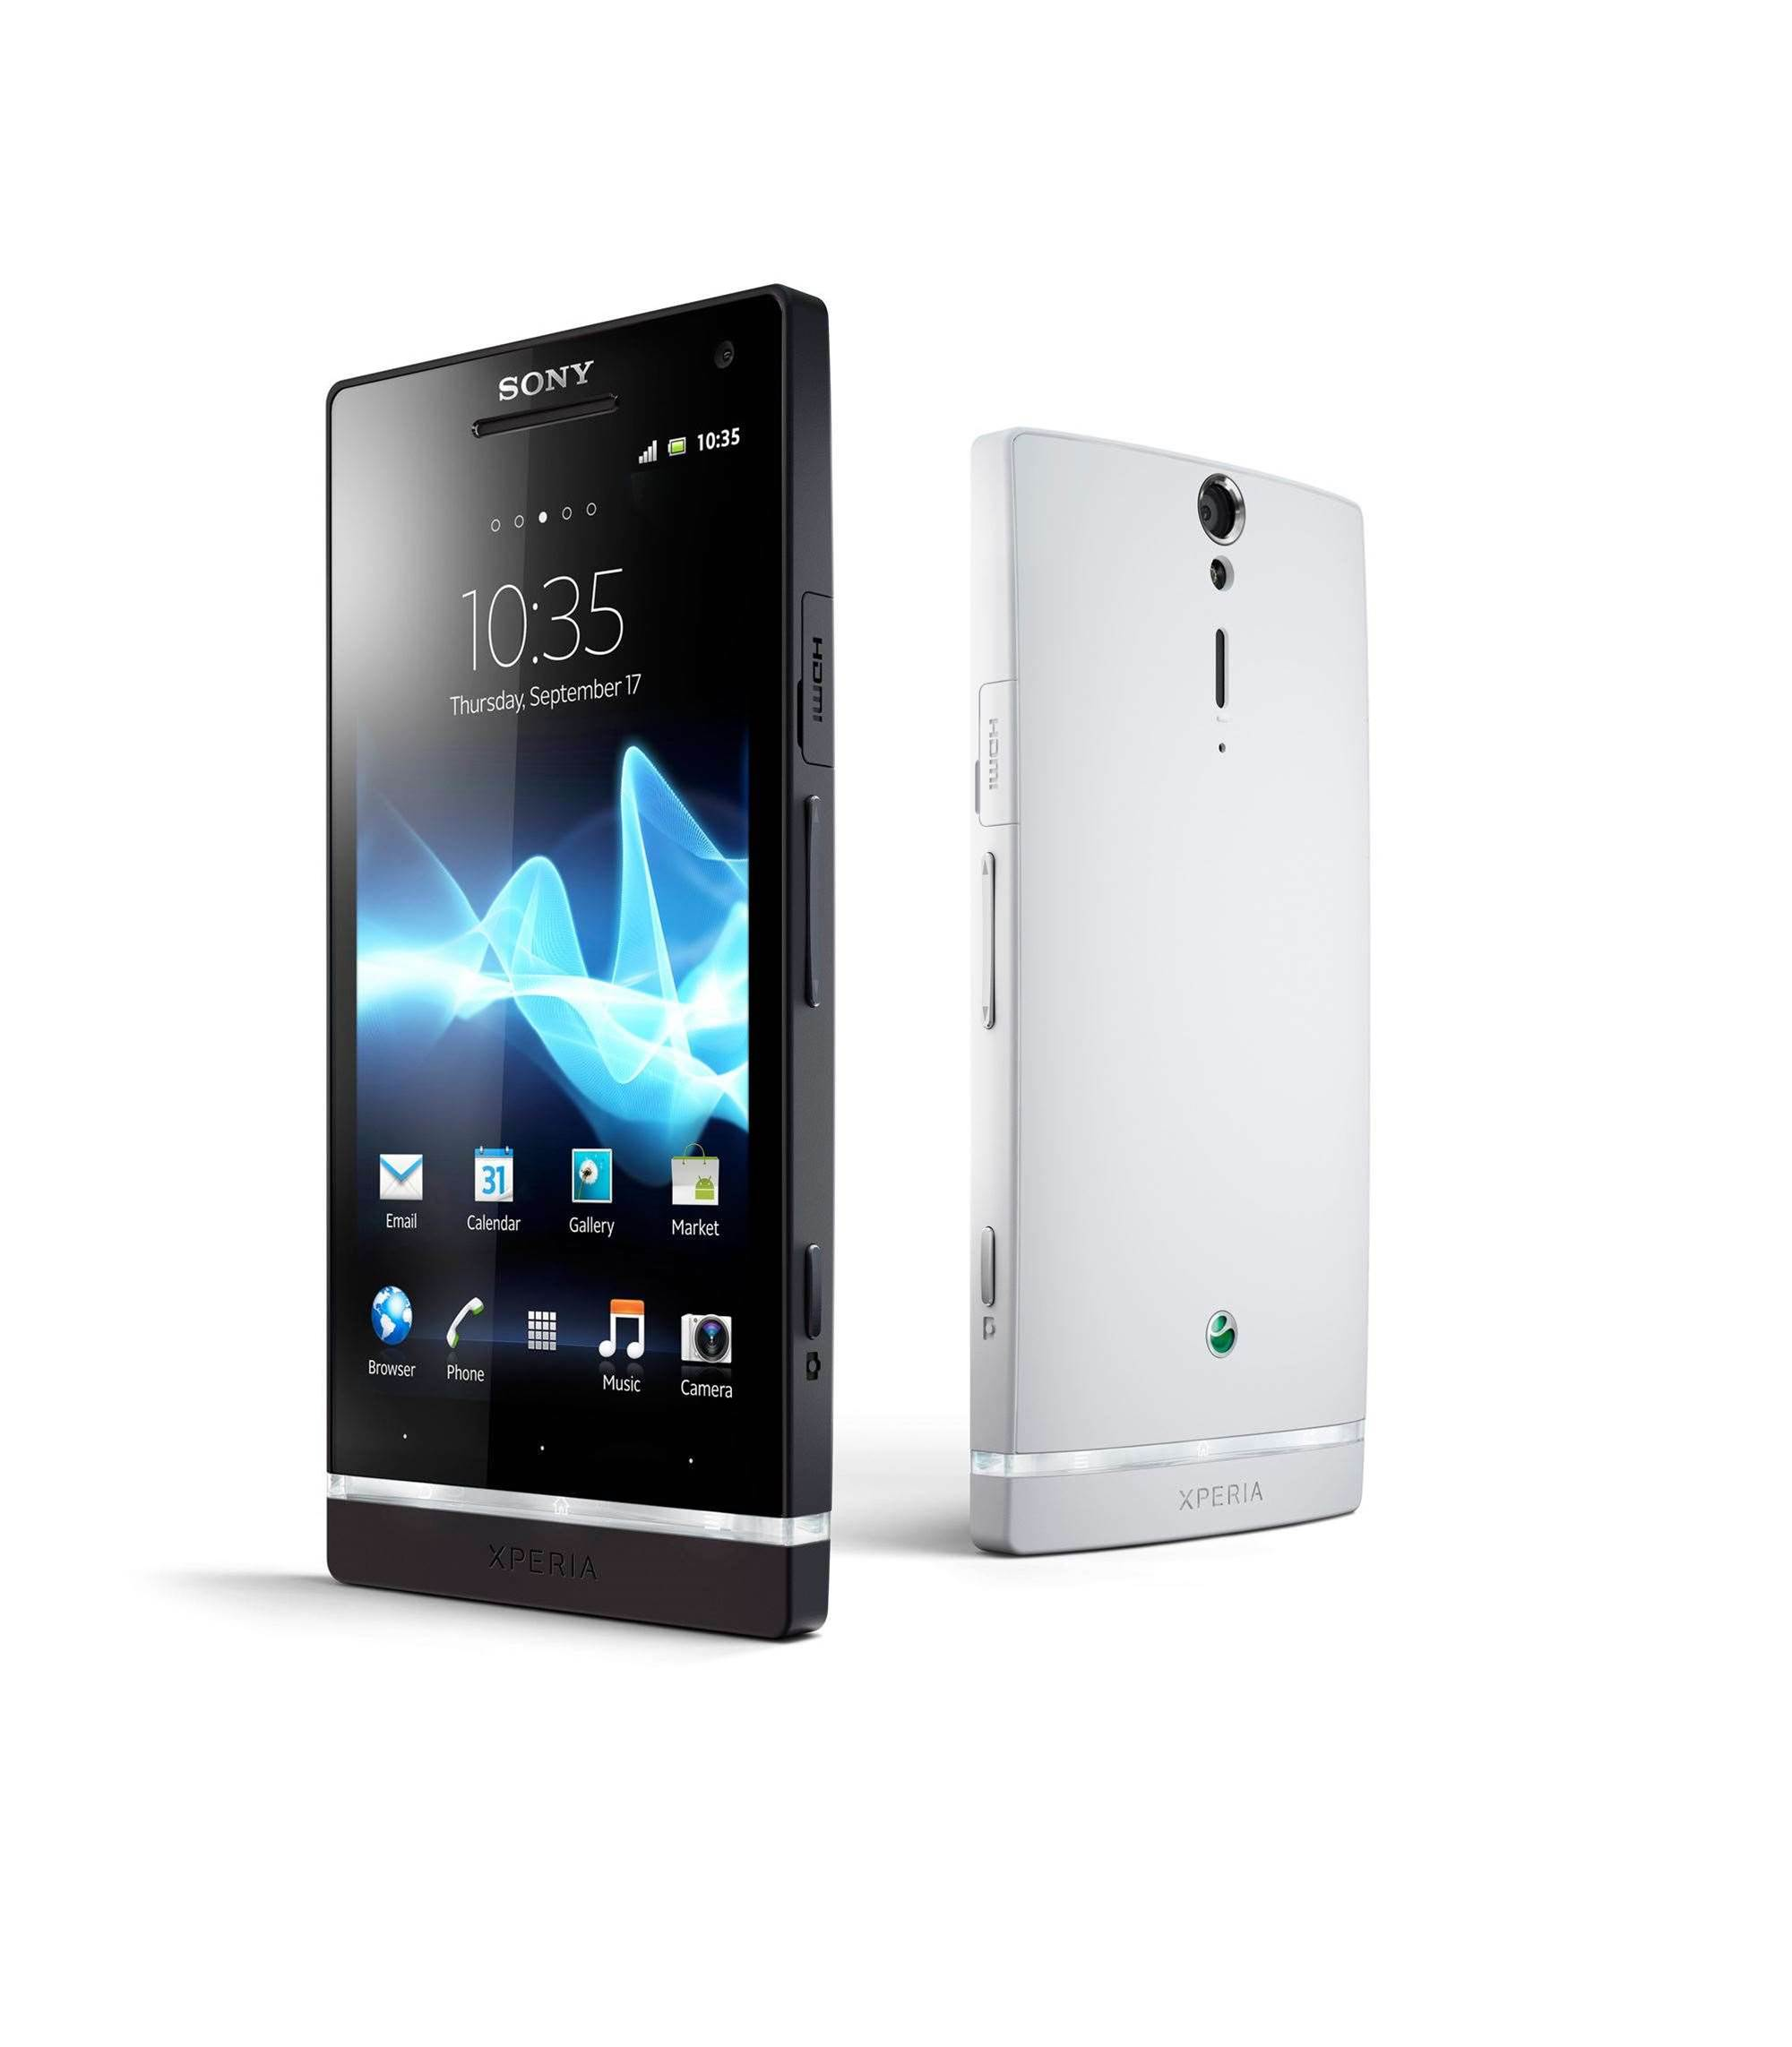 Review: Sony Xperia S